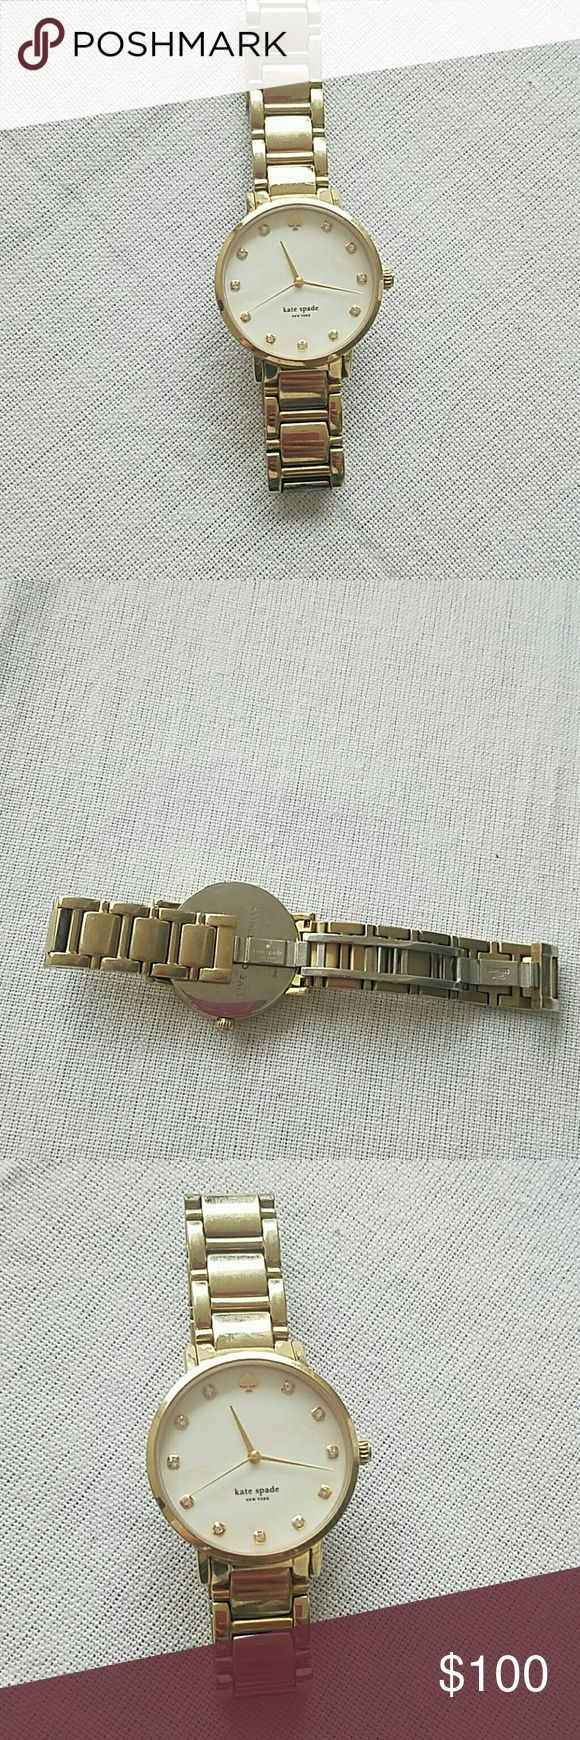 Kate spade gold watch Gently worn, gold Kate spade watch. Fashionable with every outfit! Does require a new battery. kate spade Accessories Watches